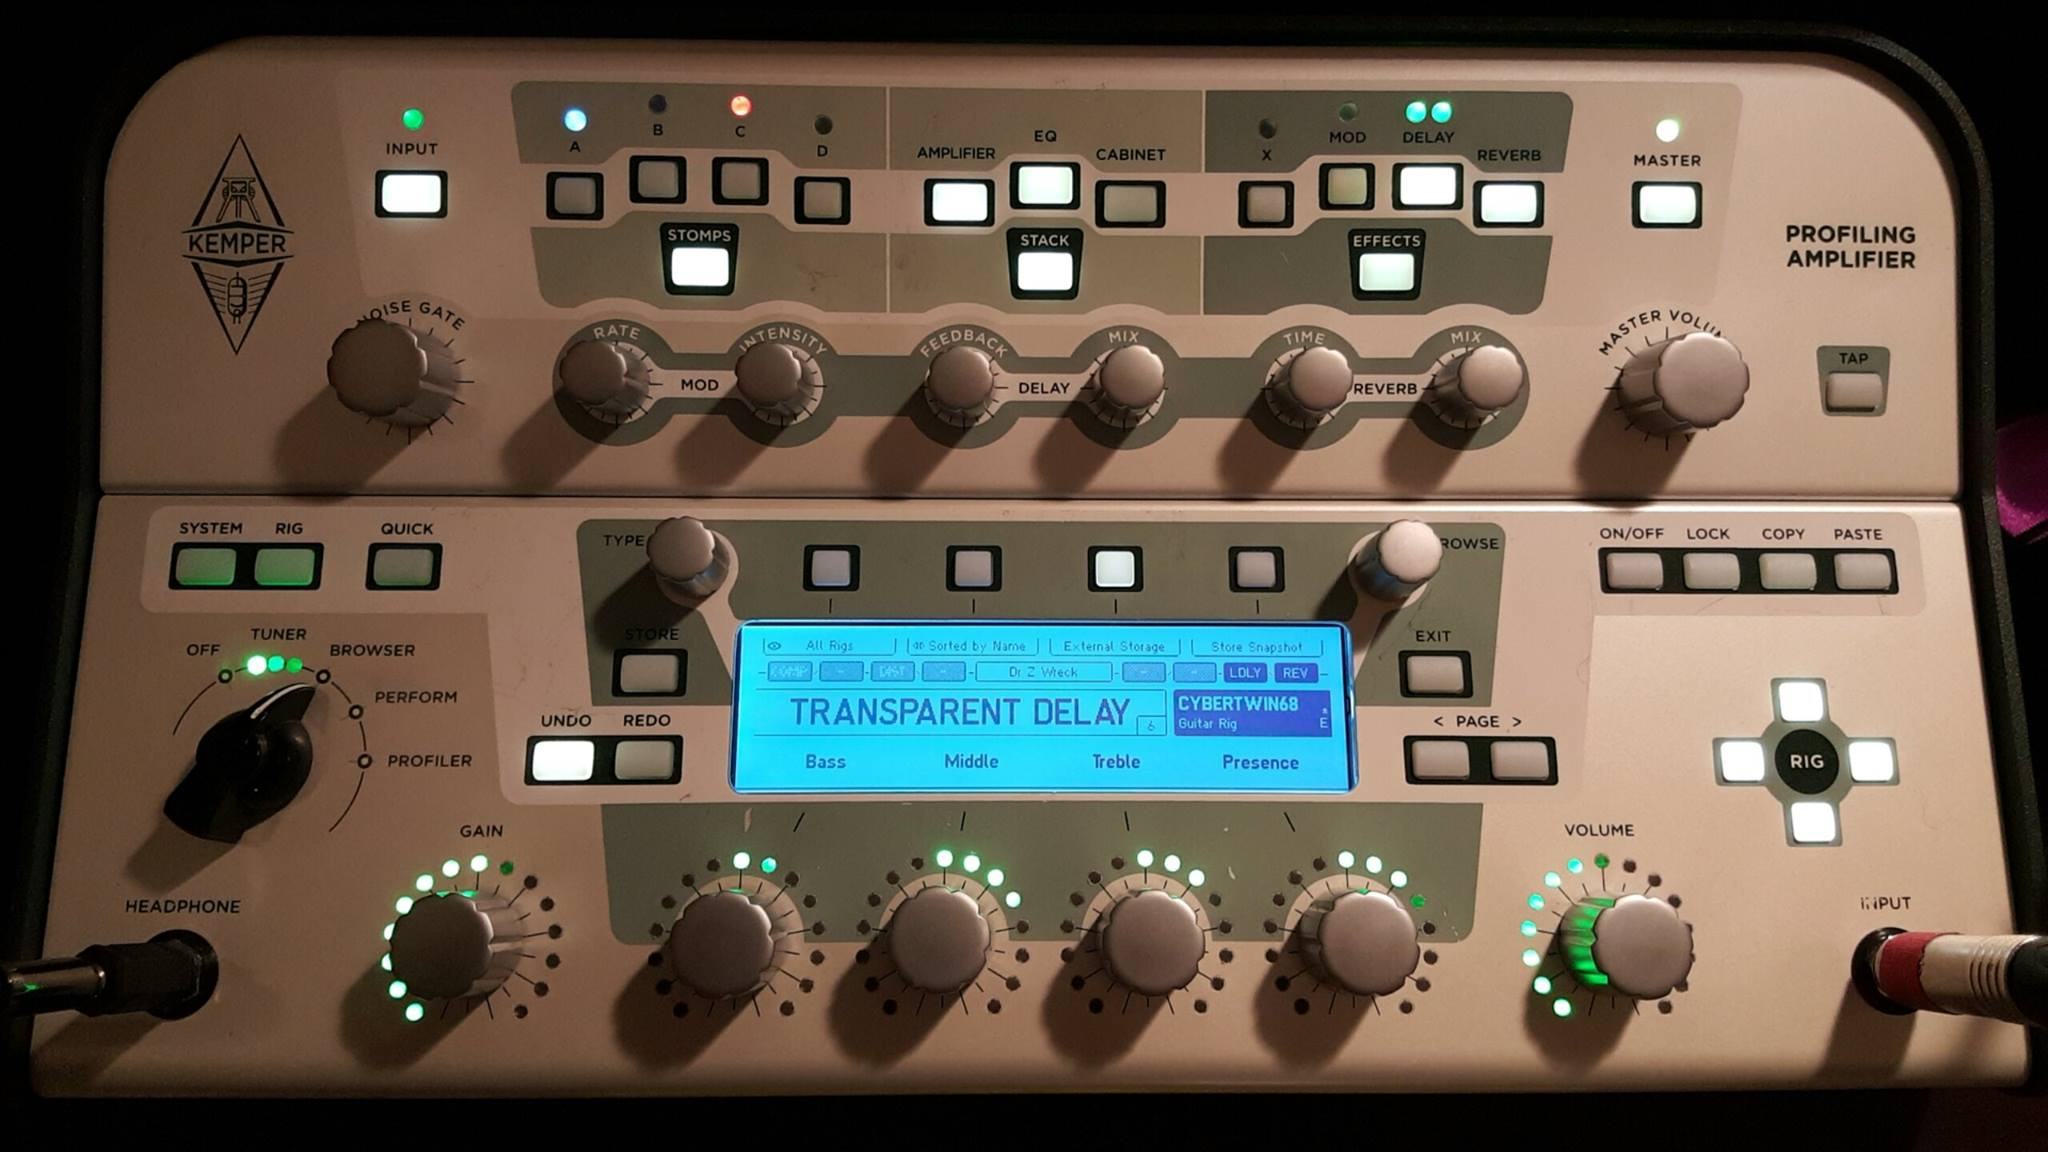 Kemper Profiling Amp Review | WIRED GUITARIST